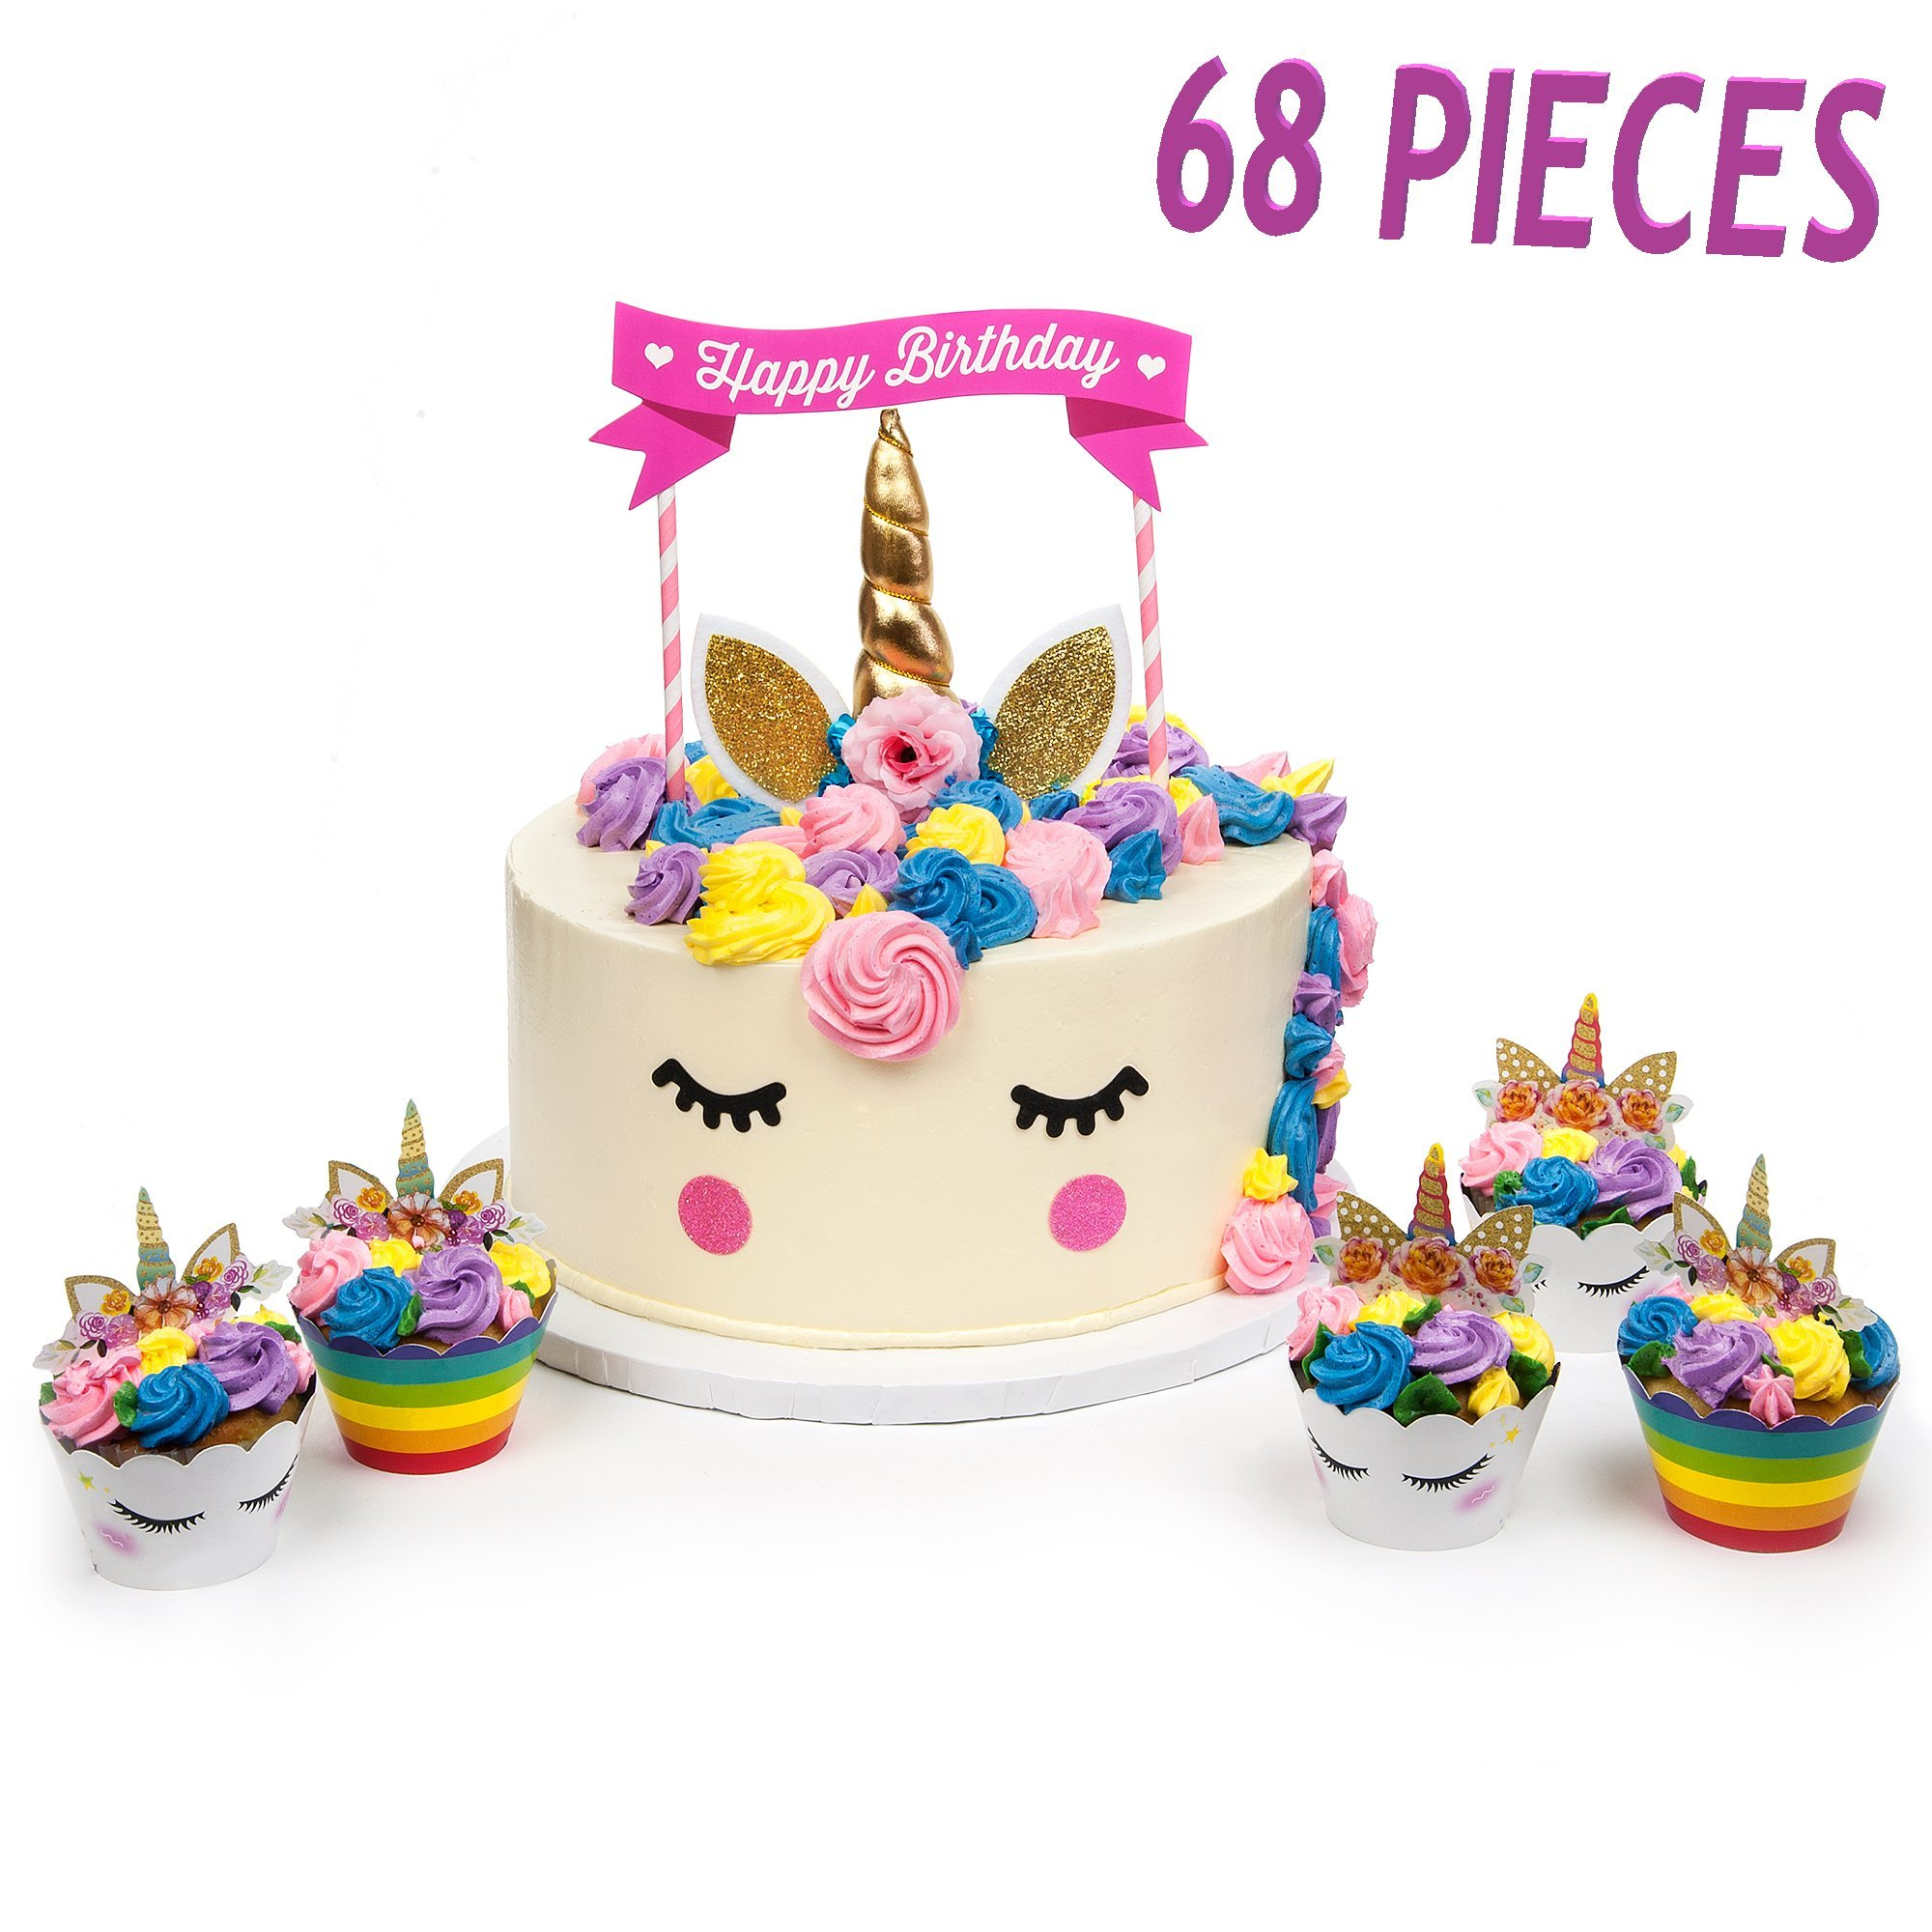 KITCHEN-PRO 2018 Gold Unicorn Birthday party Cake & cupcake/unicorn Muffin Toppers set Unicorn Horn Ears flowers Set Unicorn Party Decoration for baby shower wedding & birthday party 68 pieces